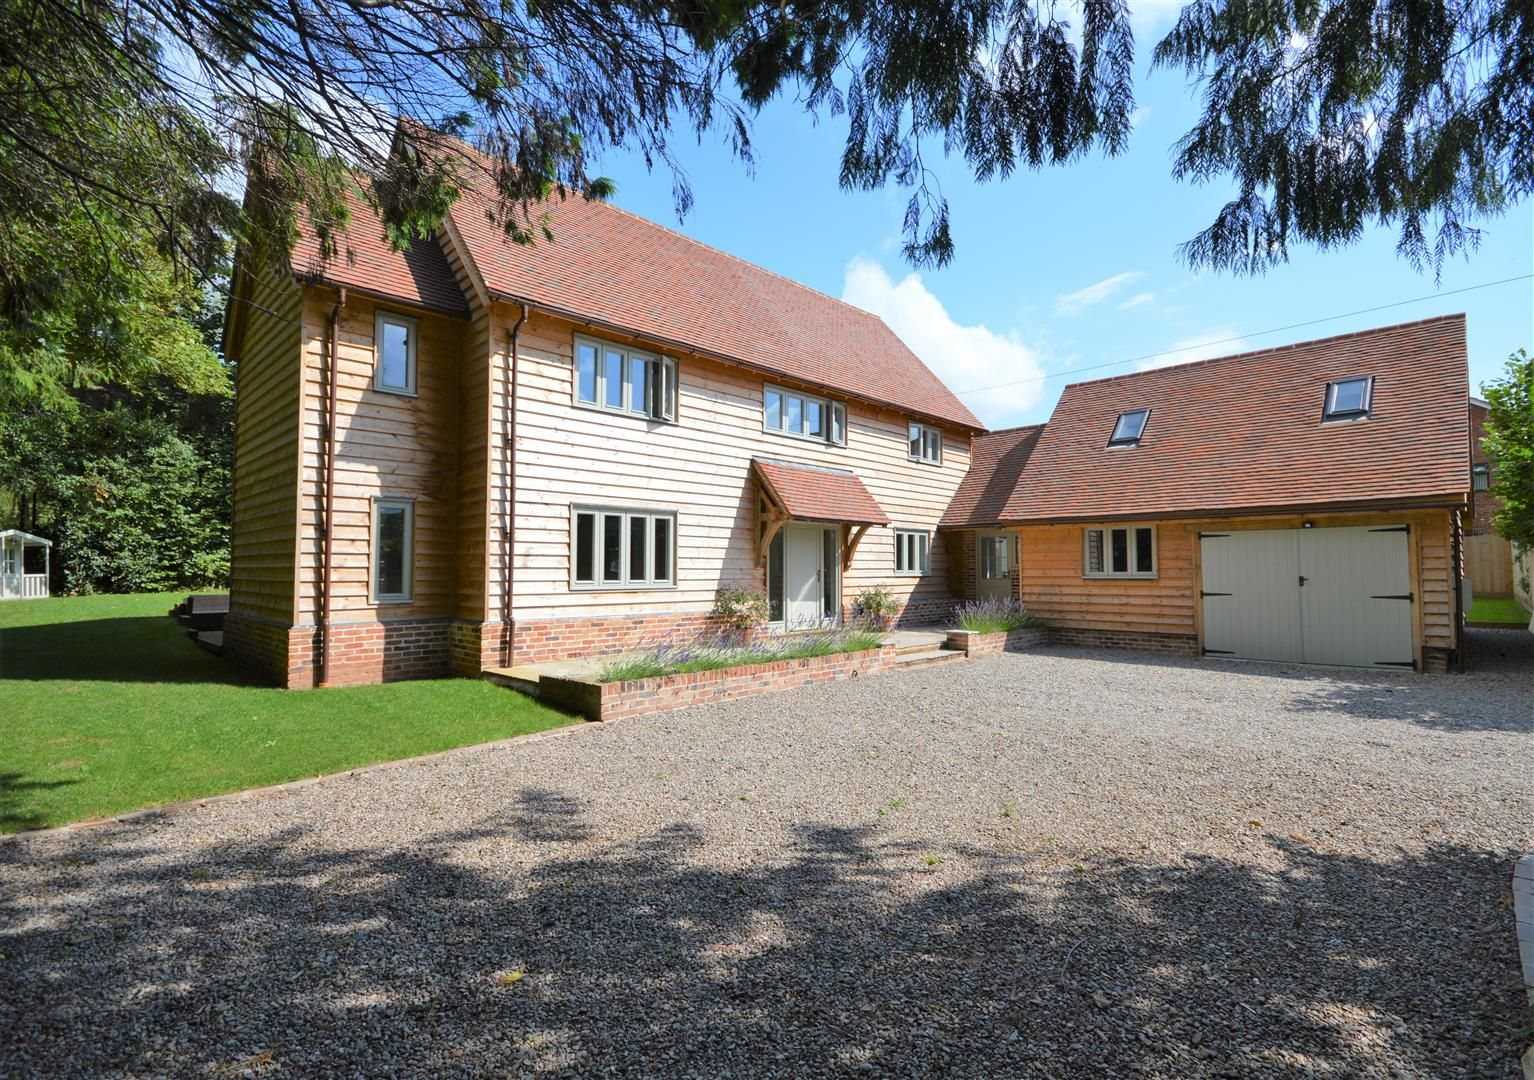 4 bed detached for sale in Bodenham, HR1